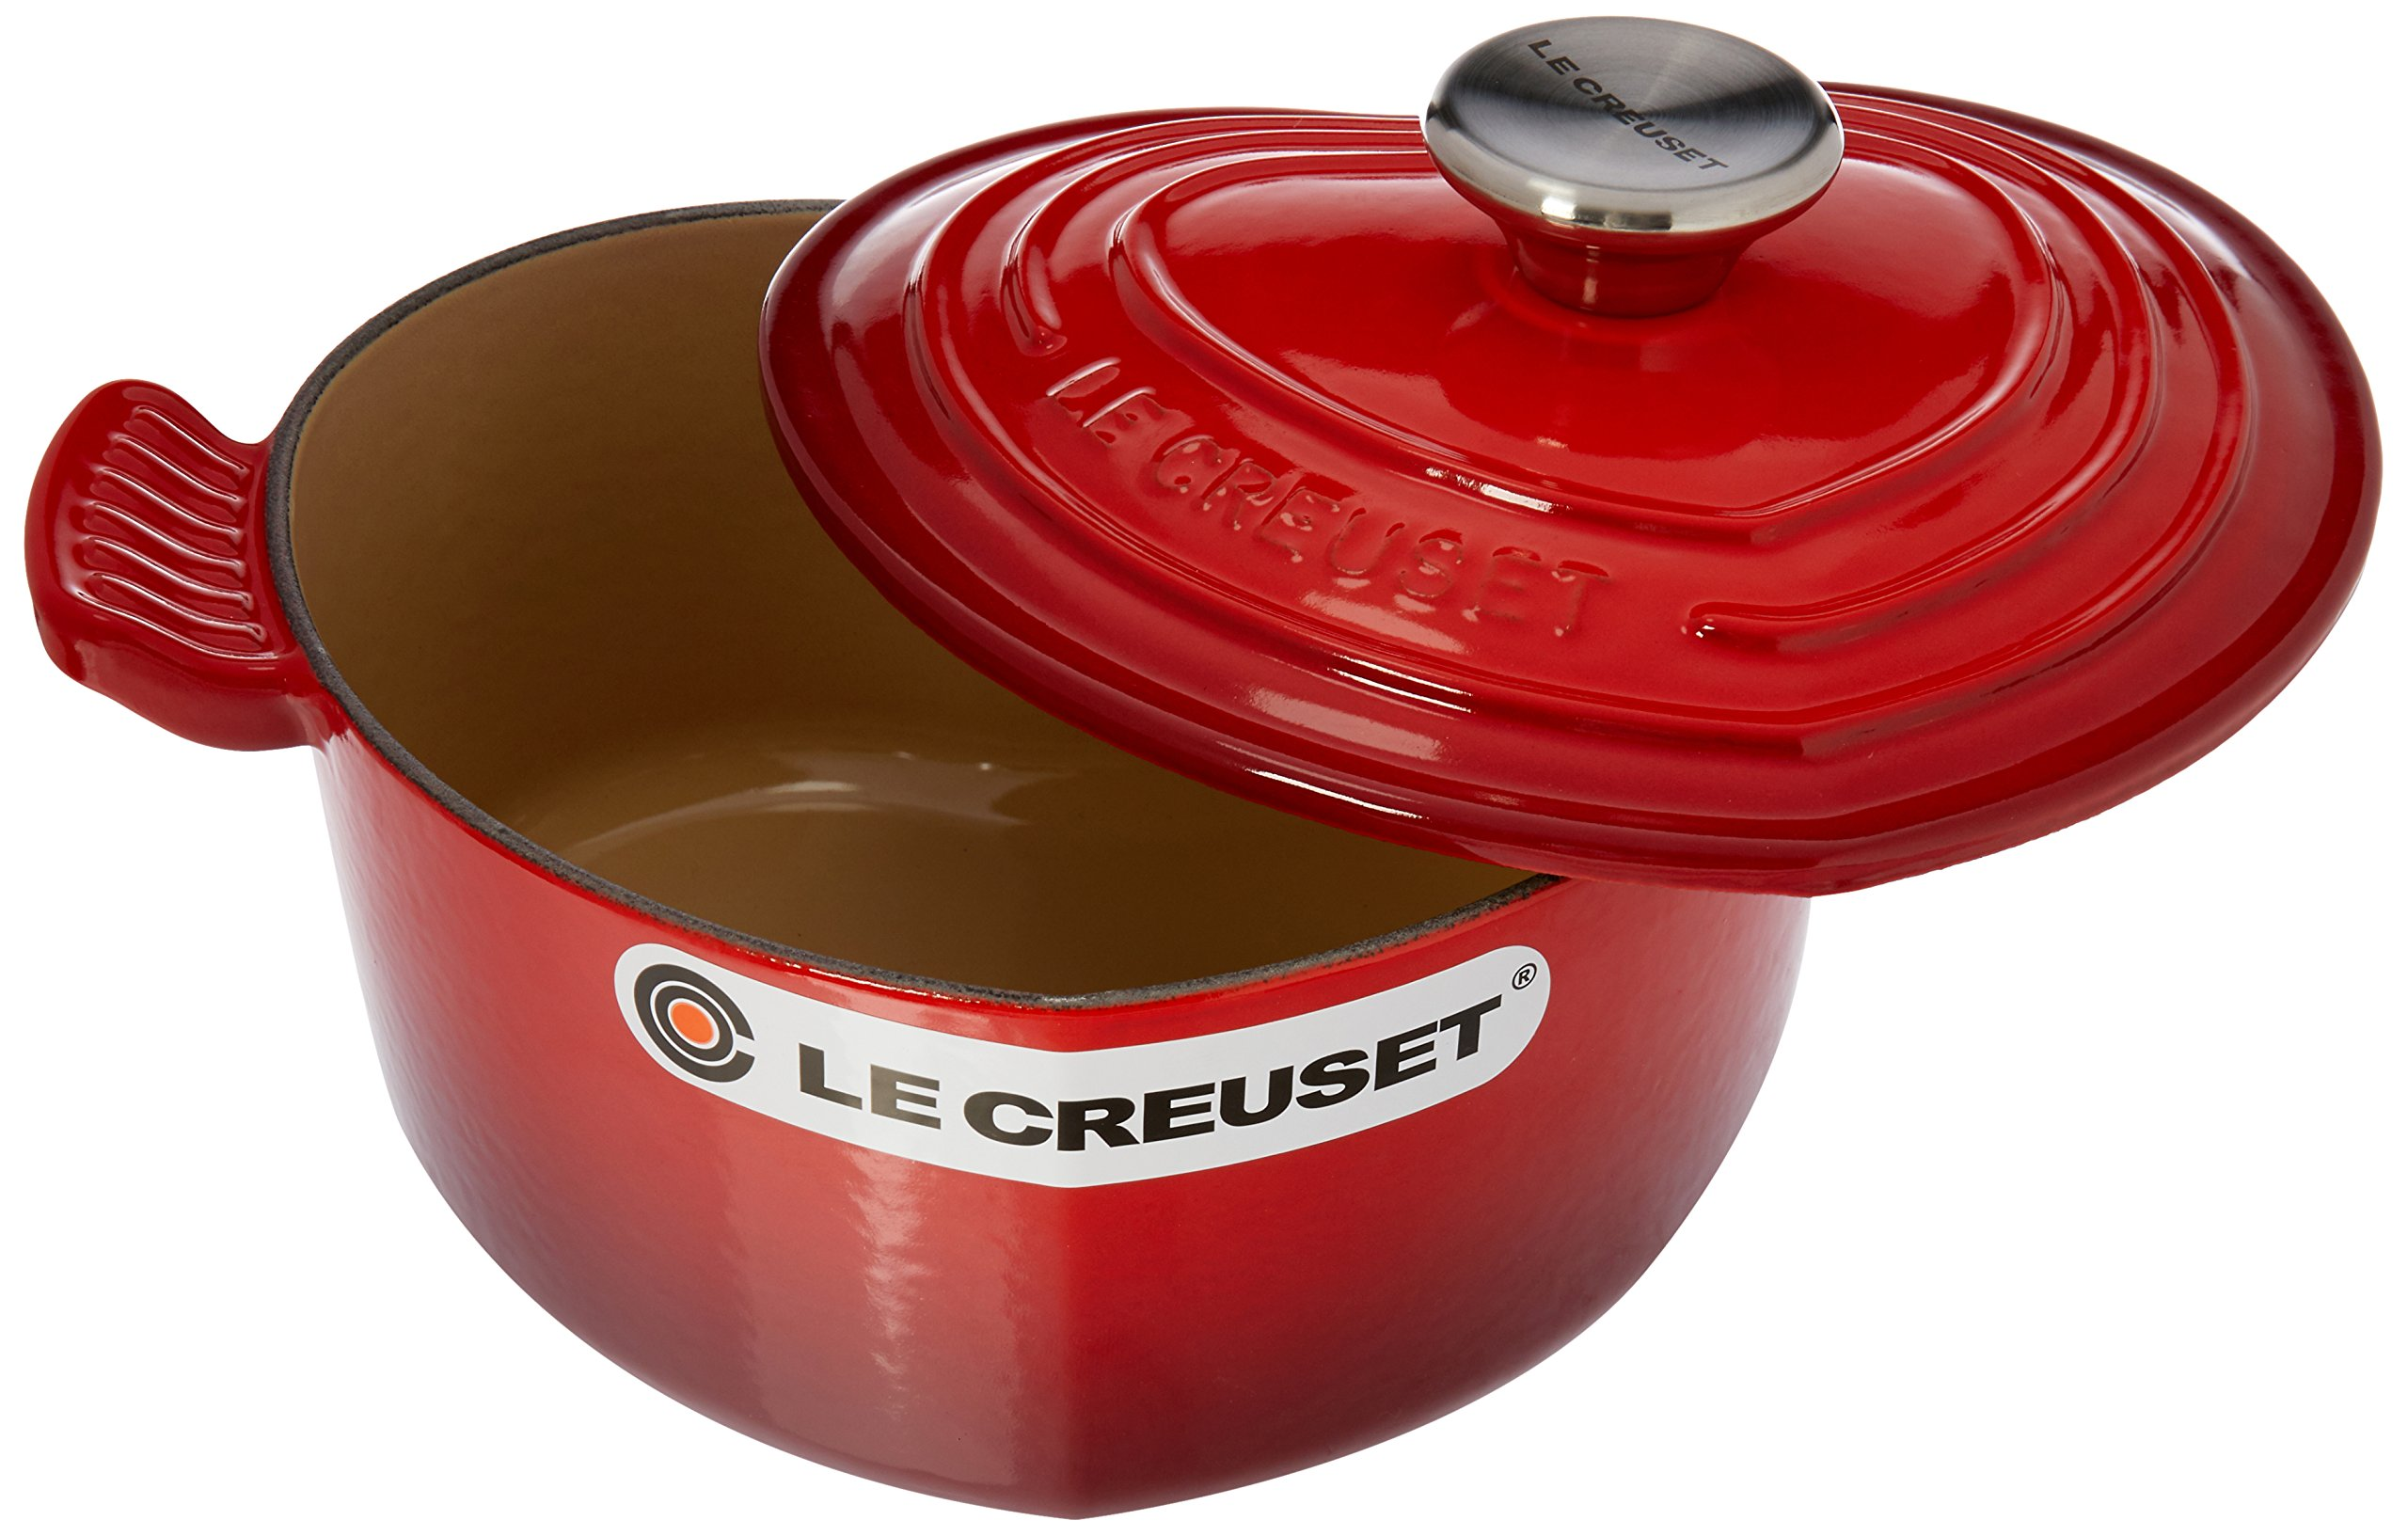 Le Creuset L25C1-0267S Enameled Heart with Stainless Steel Knob, Cerise Cast Iron Dutch Oven 2 Quart